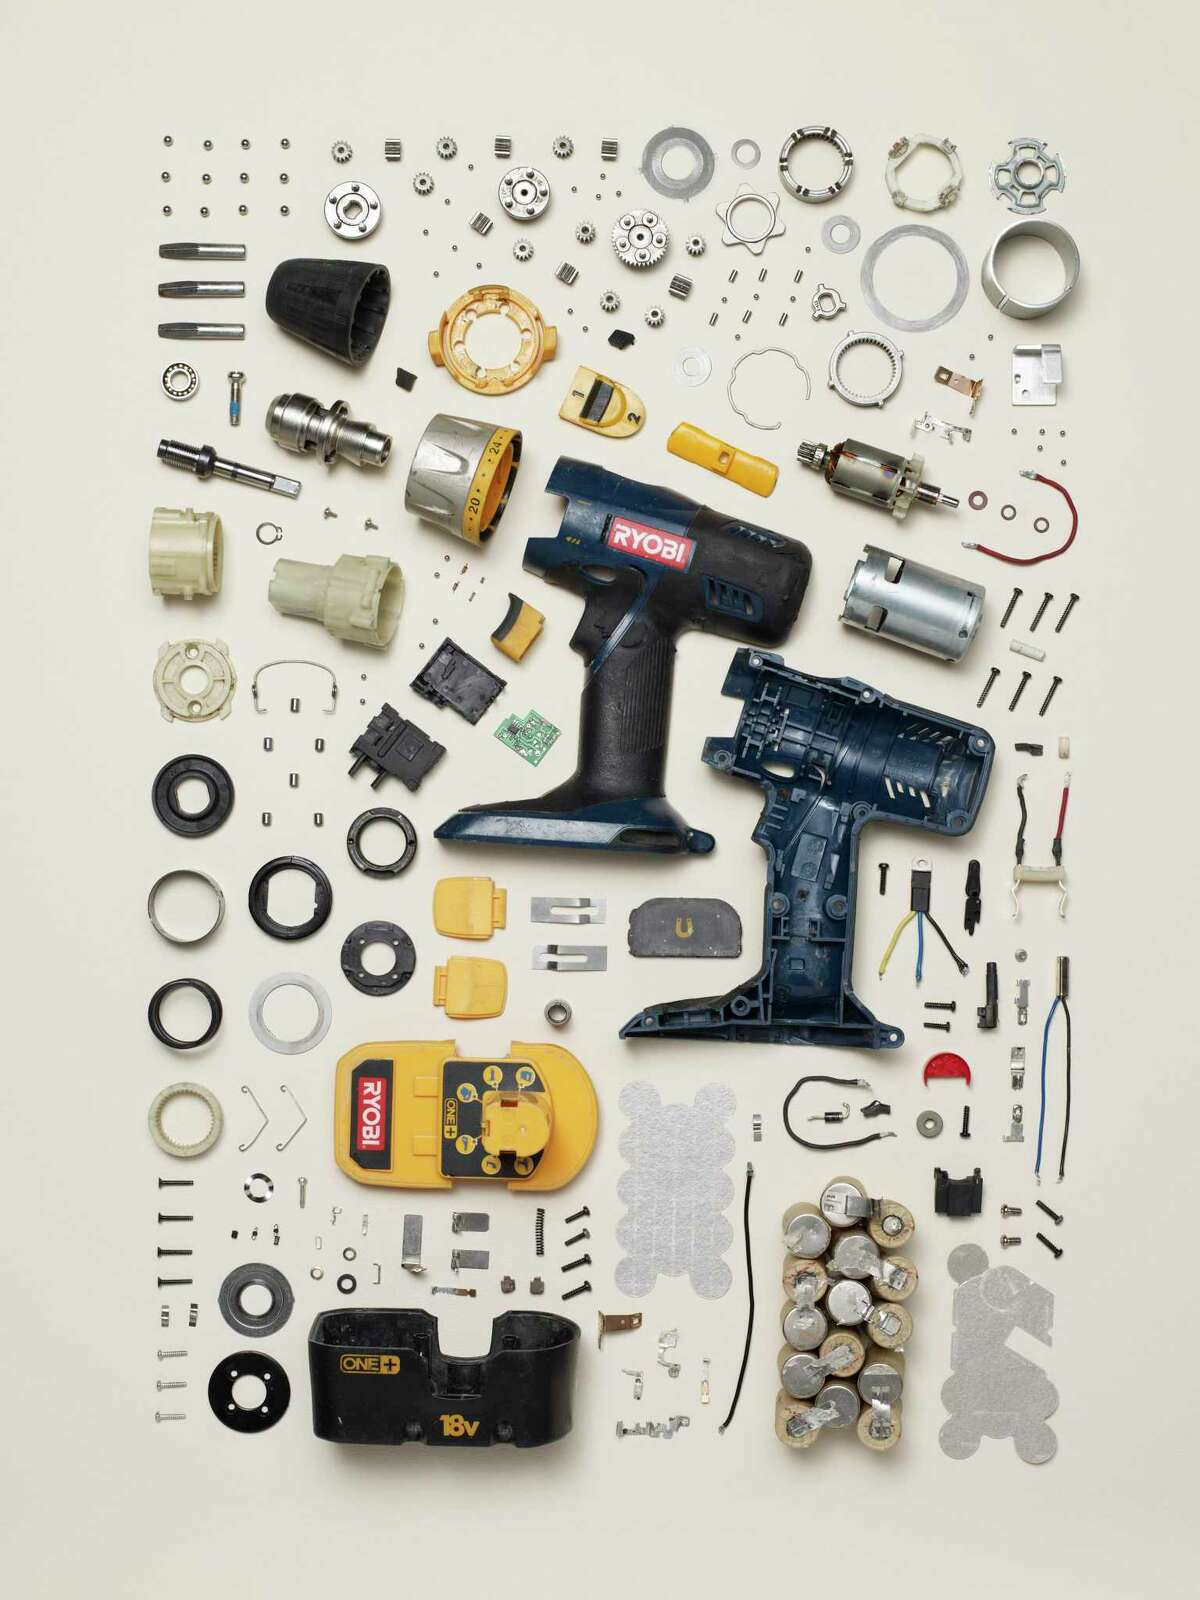 """Todd McLellan photographs disassembled objects like this drill for his show """"Things Come Apart"""" on display at the Lyman Allyn Art Museum through Feb. 7. While staying true to an object's innate purpose, McLellan created images that demonstrate that these objects were already beautifully designed. His images also speak to a culture in which """"planned obsolescence"""" runs rampant. McLellan hopes audiences take away a renewed respect for things instead of purchasing and tossing them in favor of the next biggest and best thing. """"You used to have TV-repair people back in the day. And I can see it - it costs more to repair than to buy a new one, which is sort of something that needs to be changed. Since I started this, I have seen a slow progression of people really interested in making change, which is great."""""""